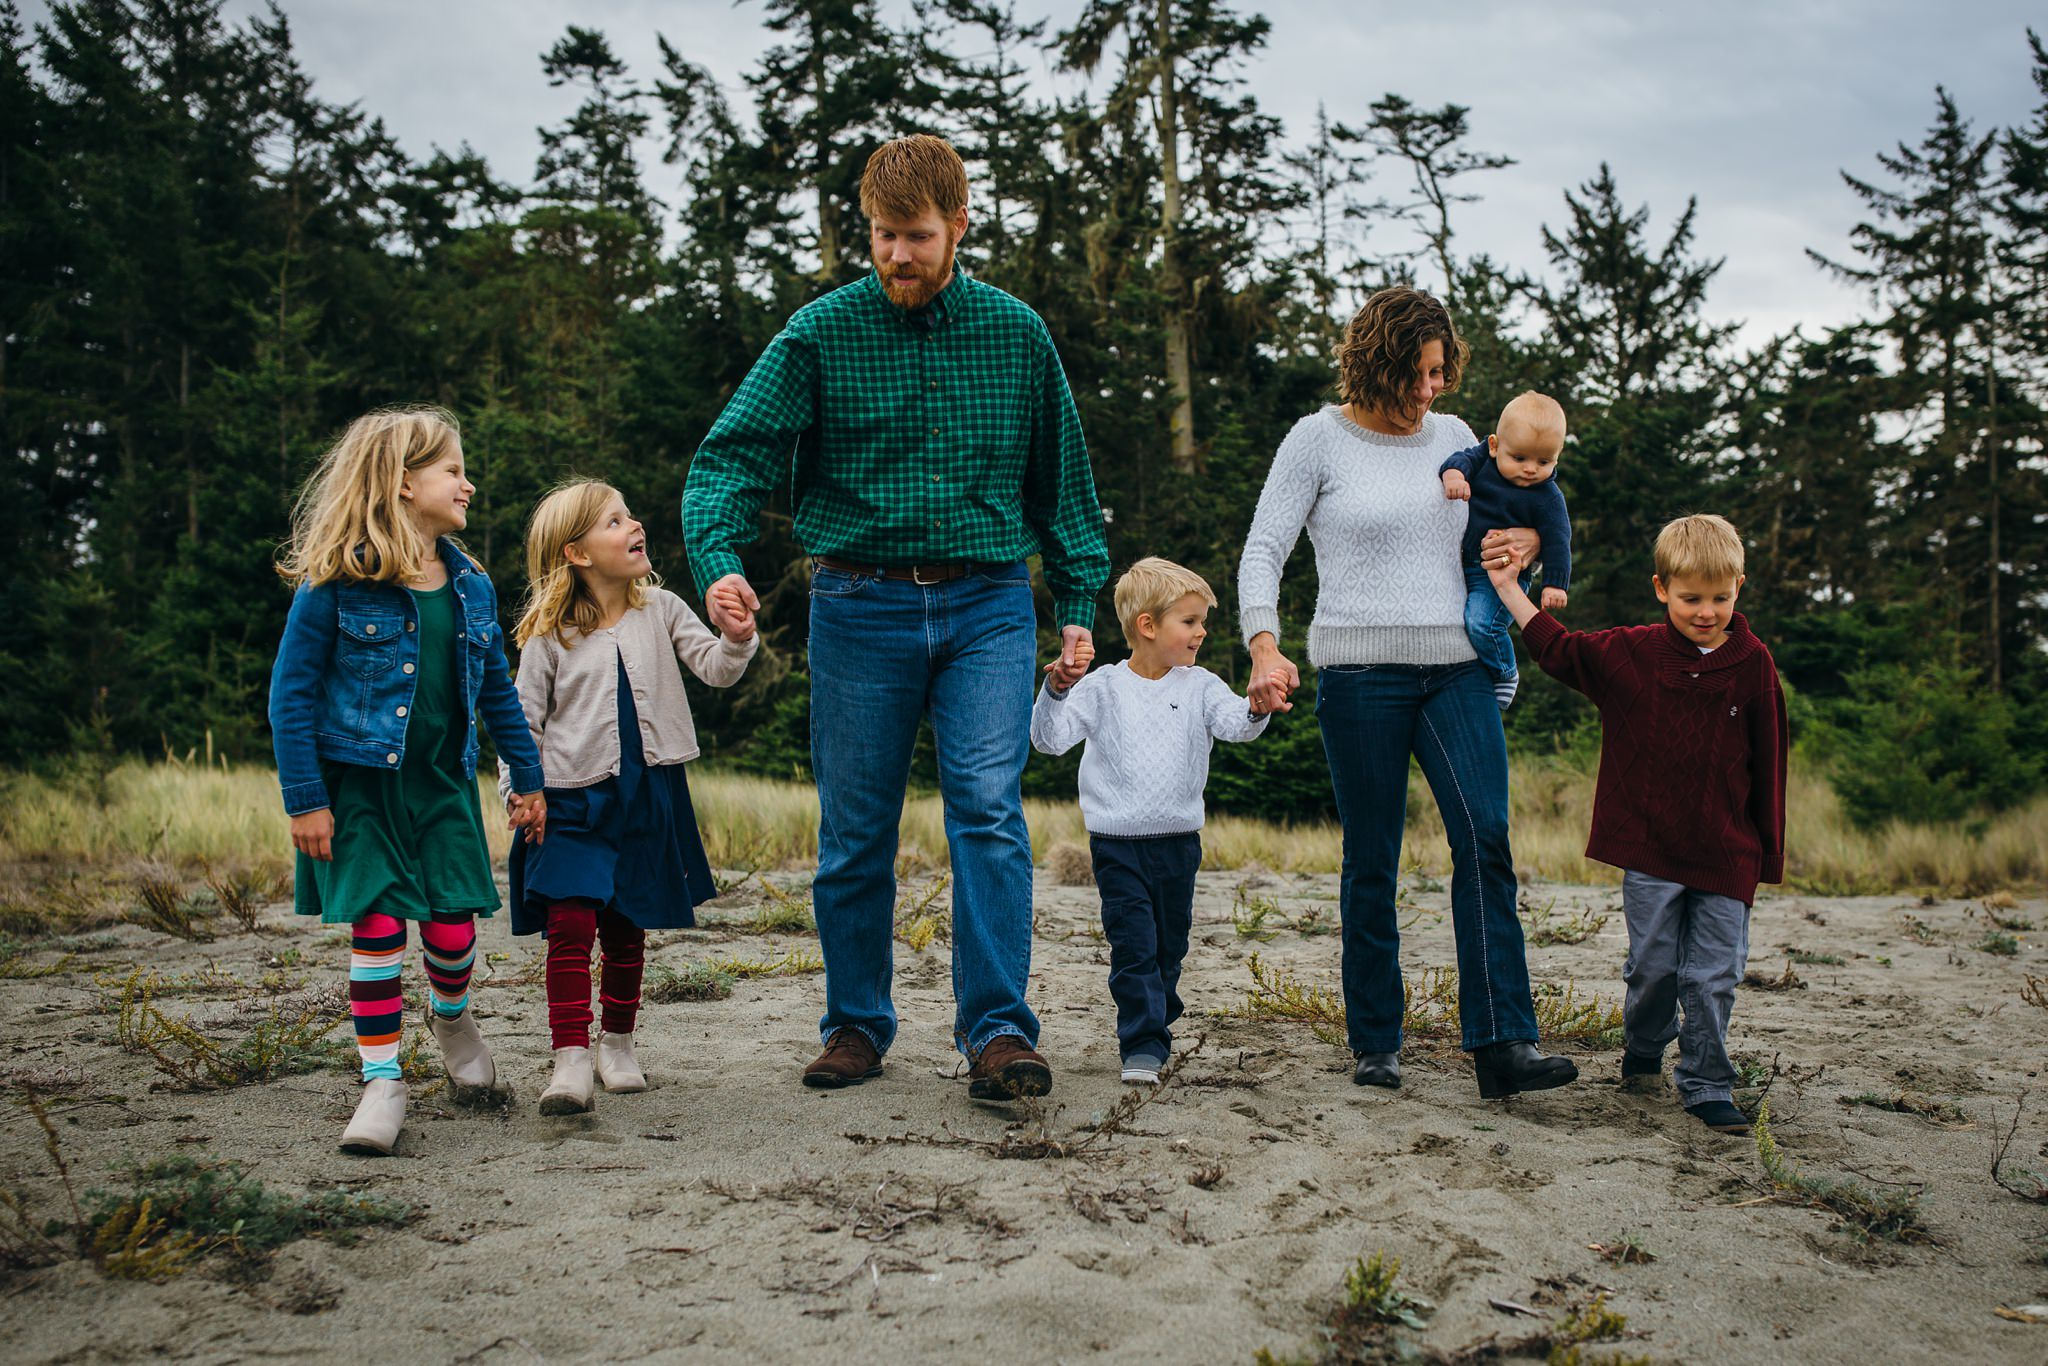 kara chappell whidbey island family photography family holding hands walking across field